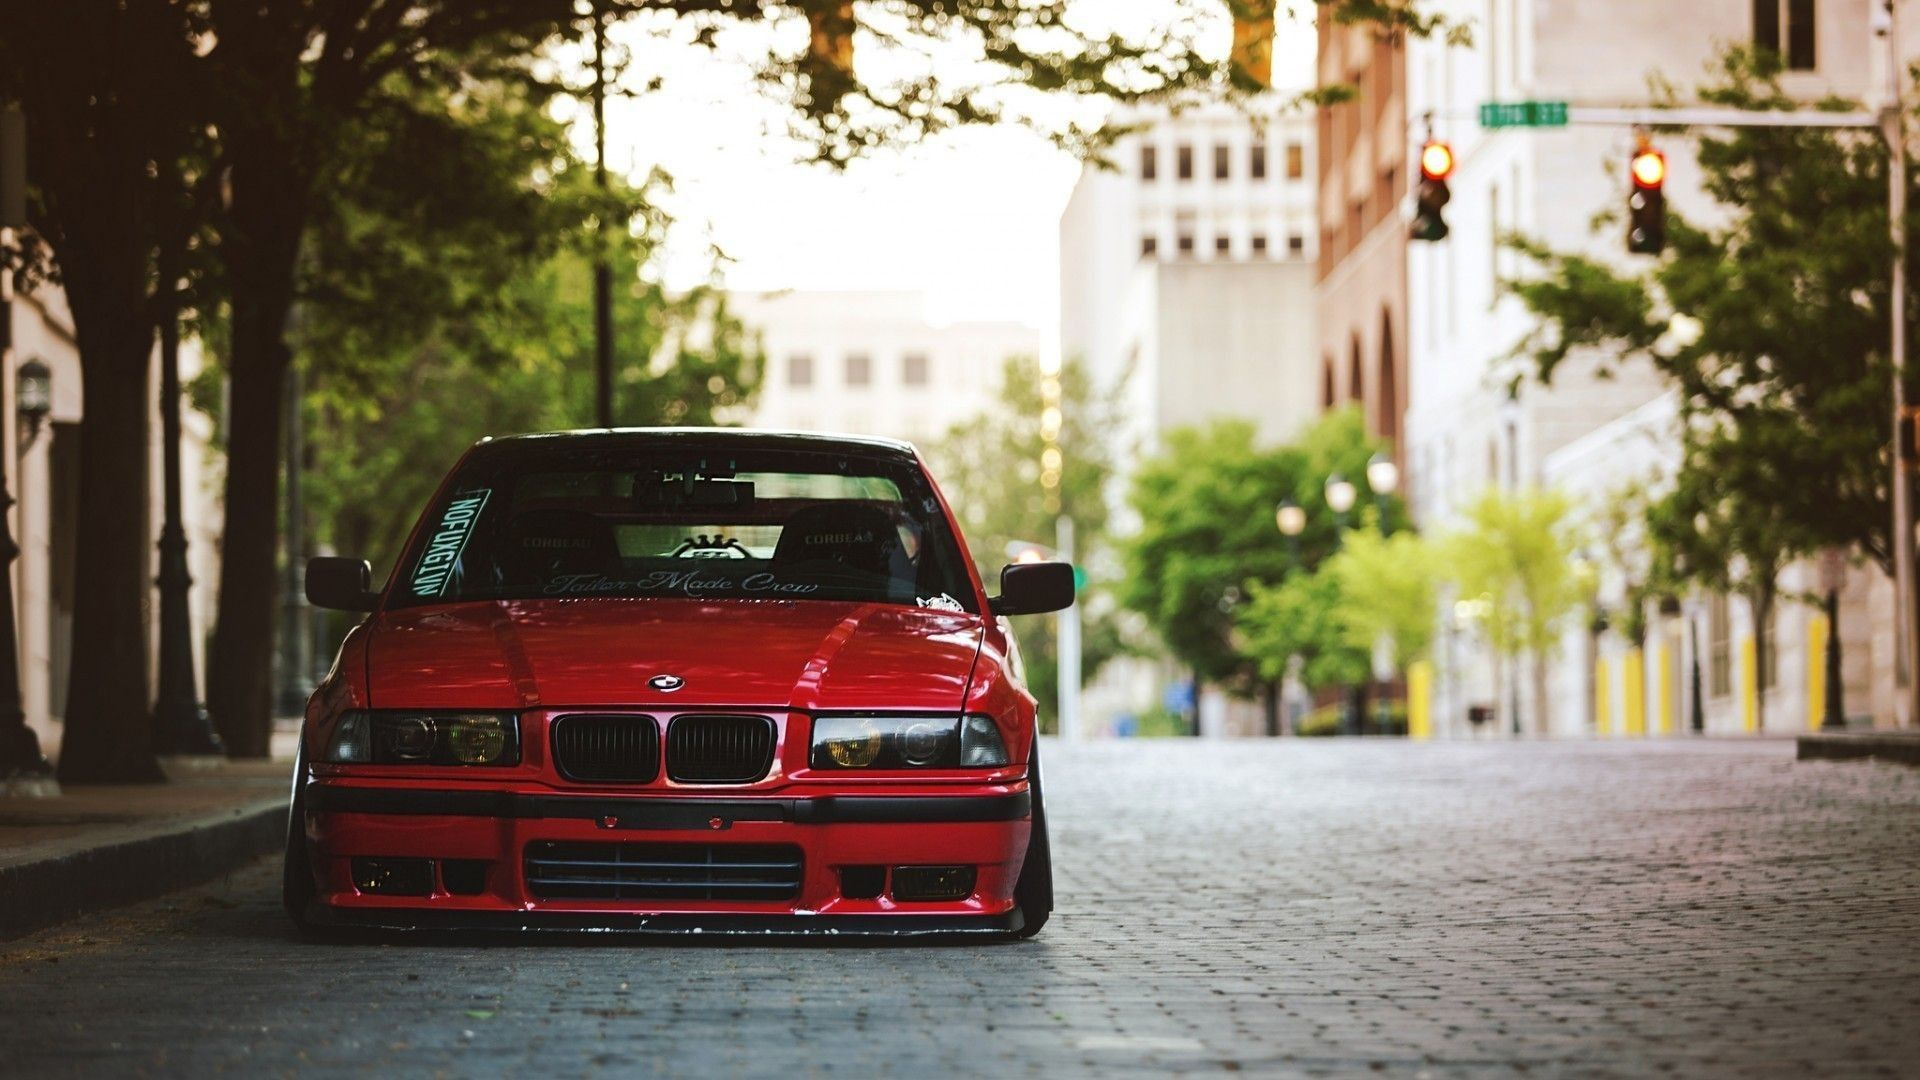 BMW E36 Wallpapers   Top BMW E36 Backgrounds   WallpaperAccess 1920x1080